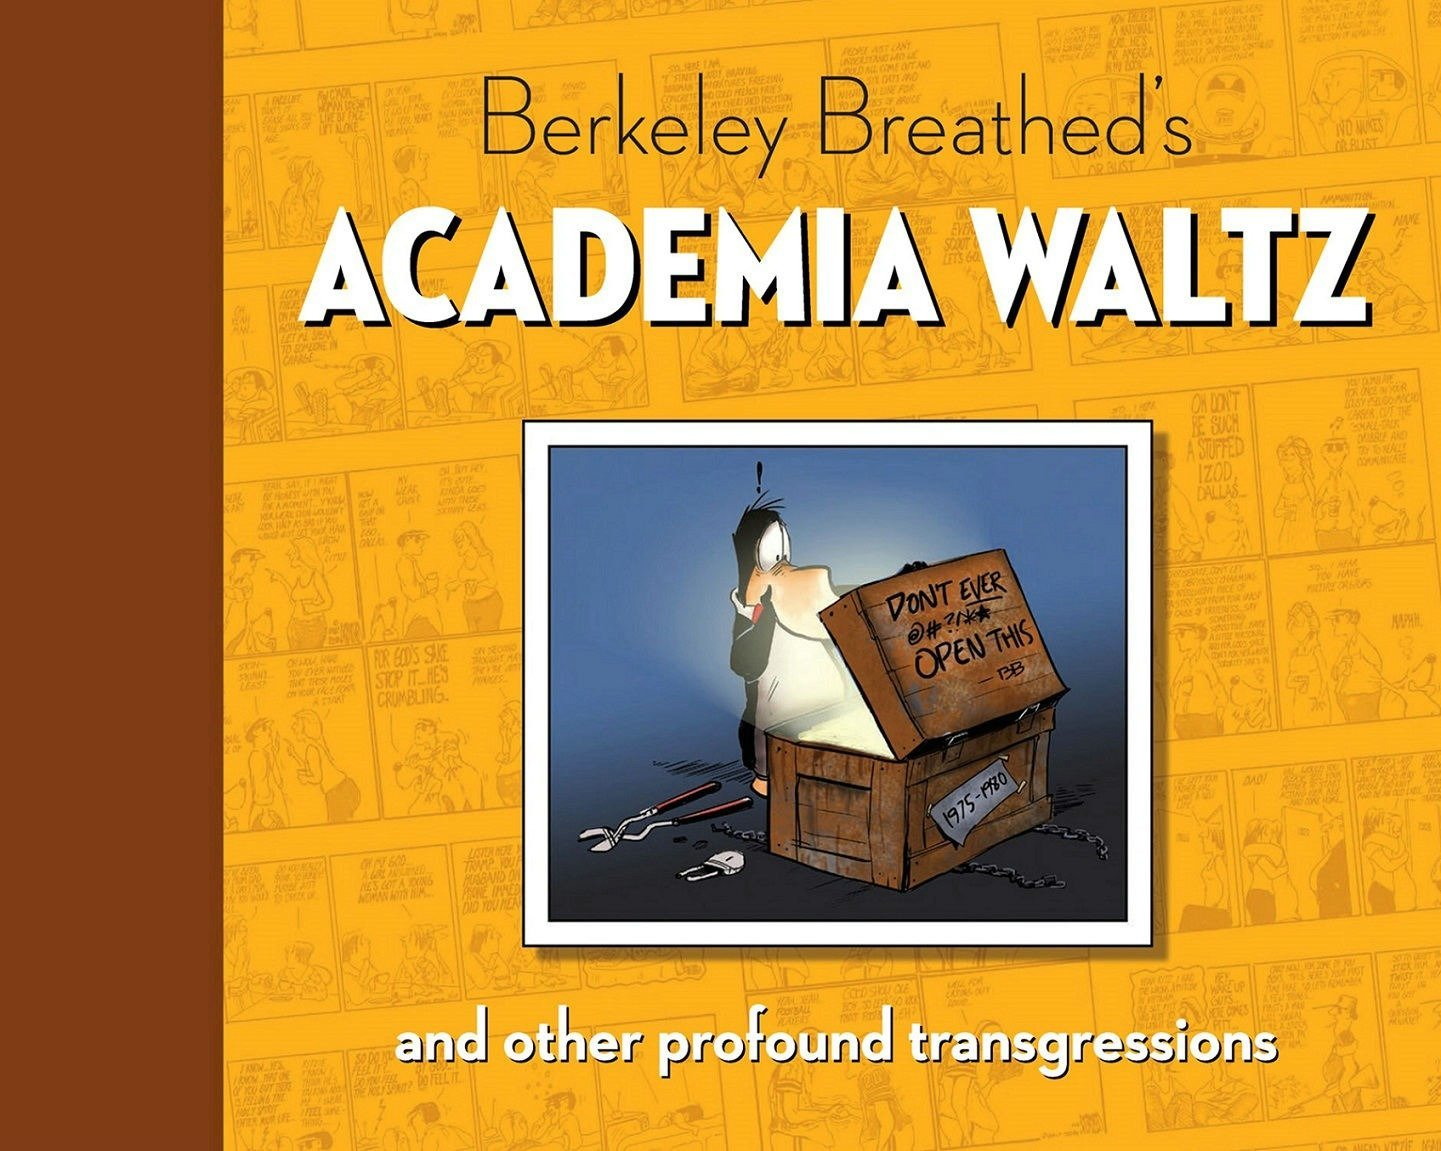 Berkeley Breathed's Academia Waltz And Other Profound Transgressions (Bloom County) by IDW Publishing